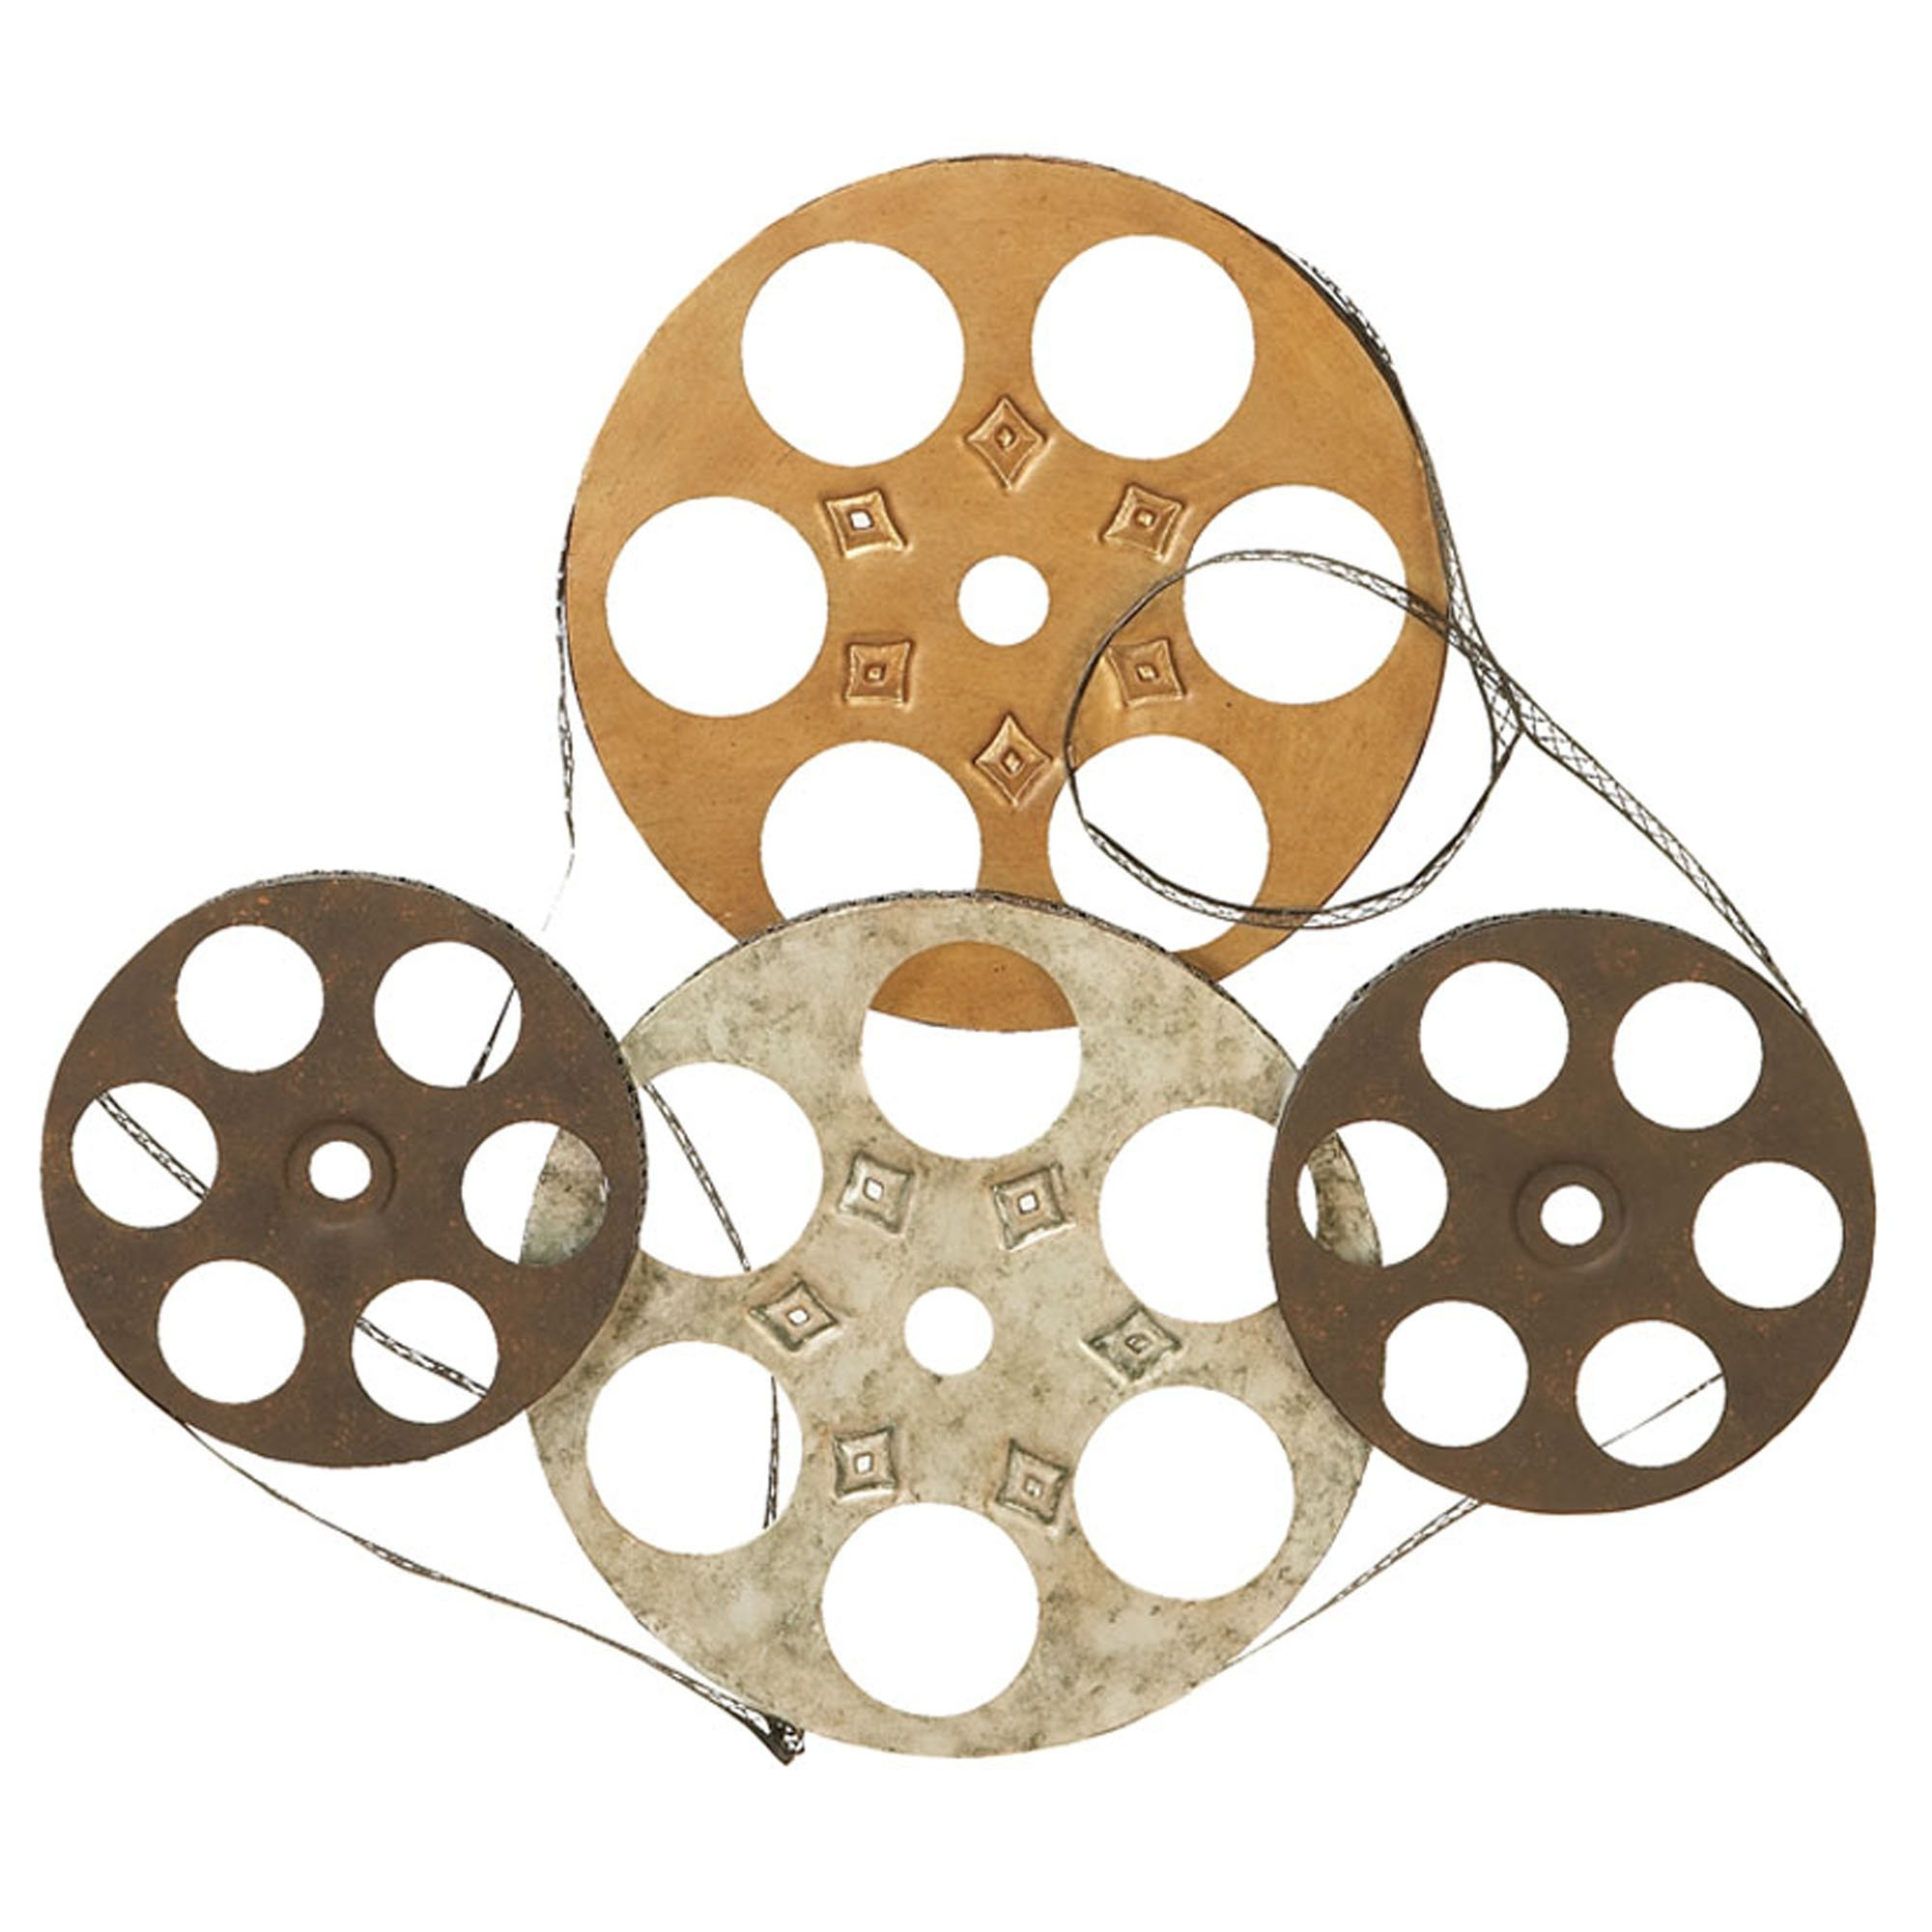 Movie Reel Wall Art Pertaining To Popular Wall Art Design Ideas: Showtime Contemporary Film Reel Wall Art (View 9 of 15)